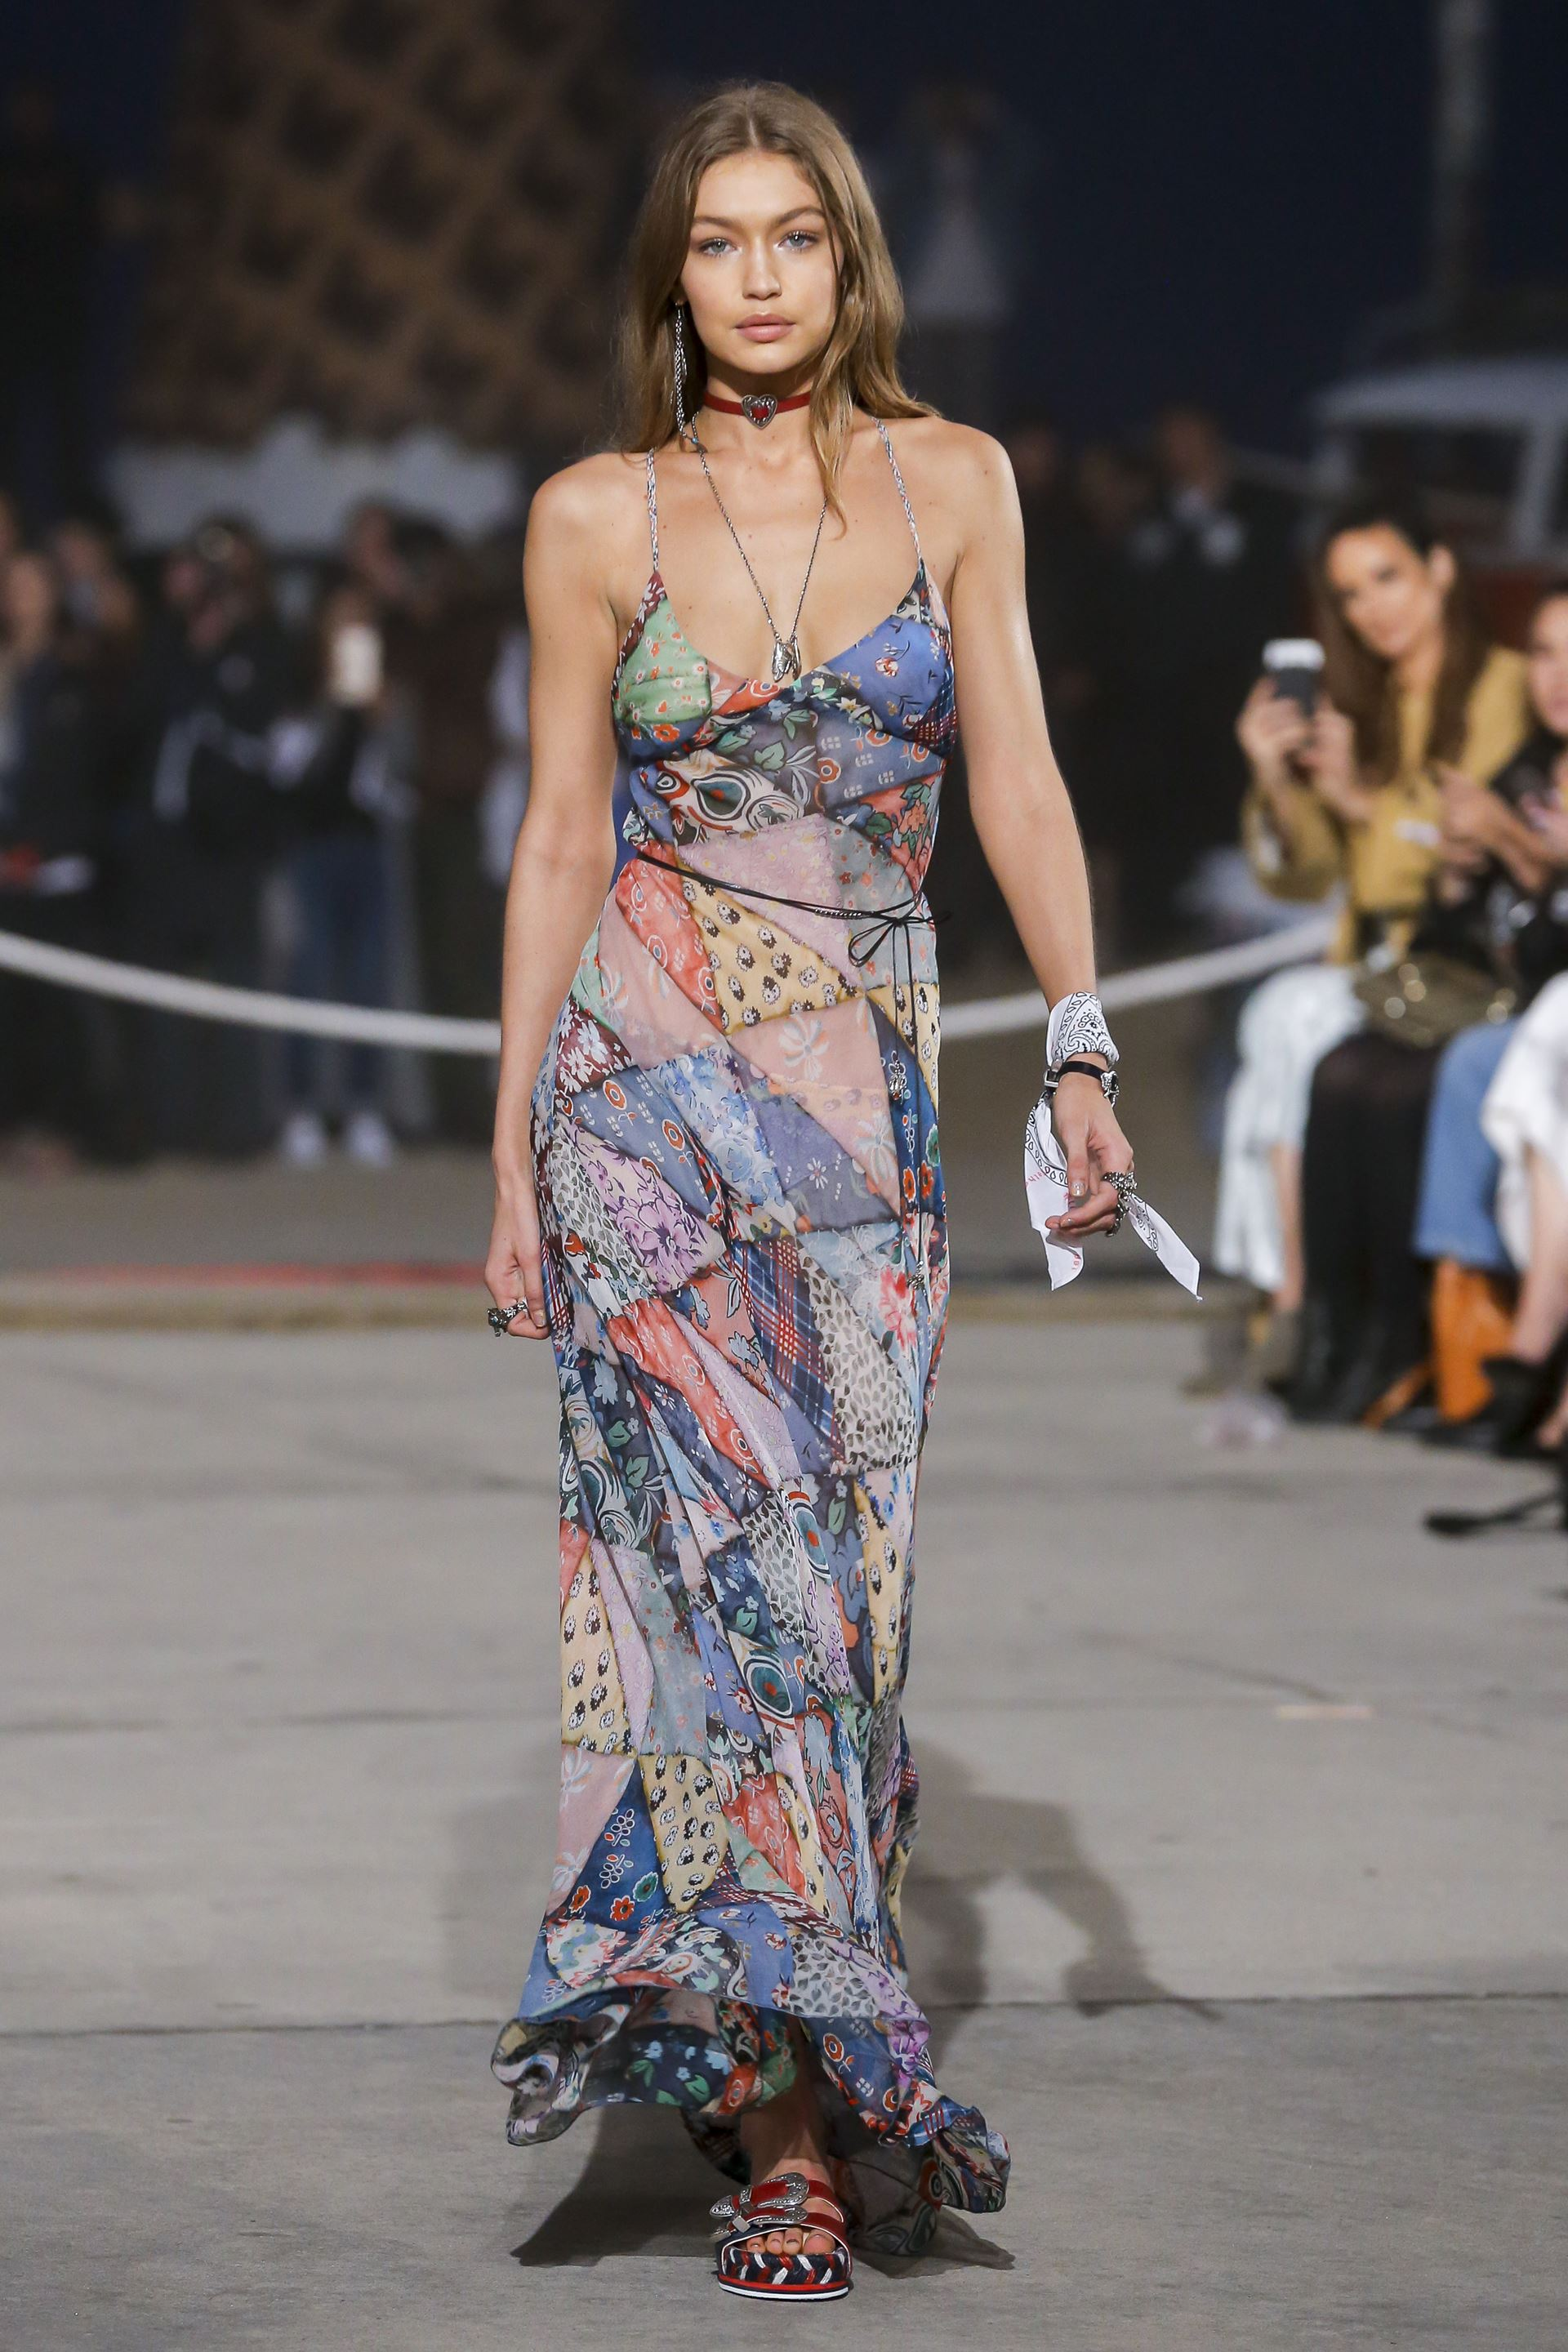 Tommy hilfiger brings tommynow experiential consumer fashion show to tommyland in venice beach - Tommy hilfiger show ...